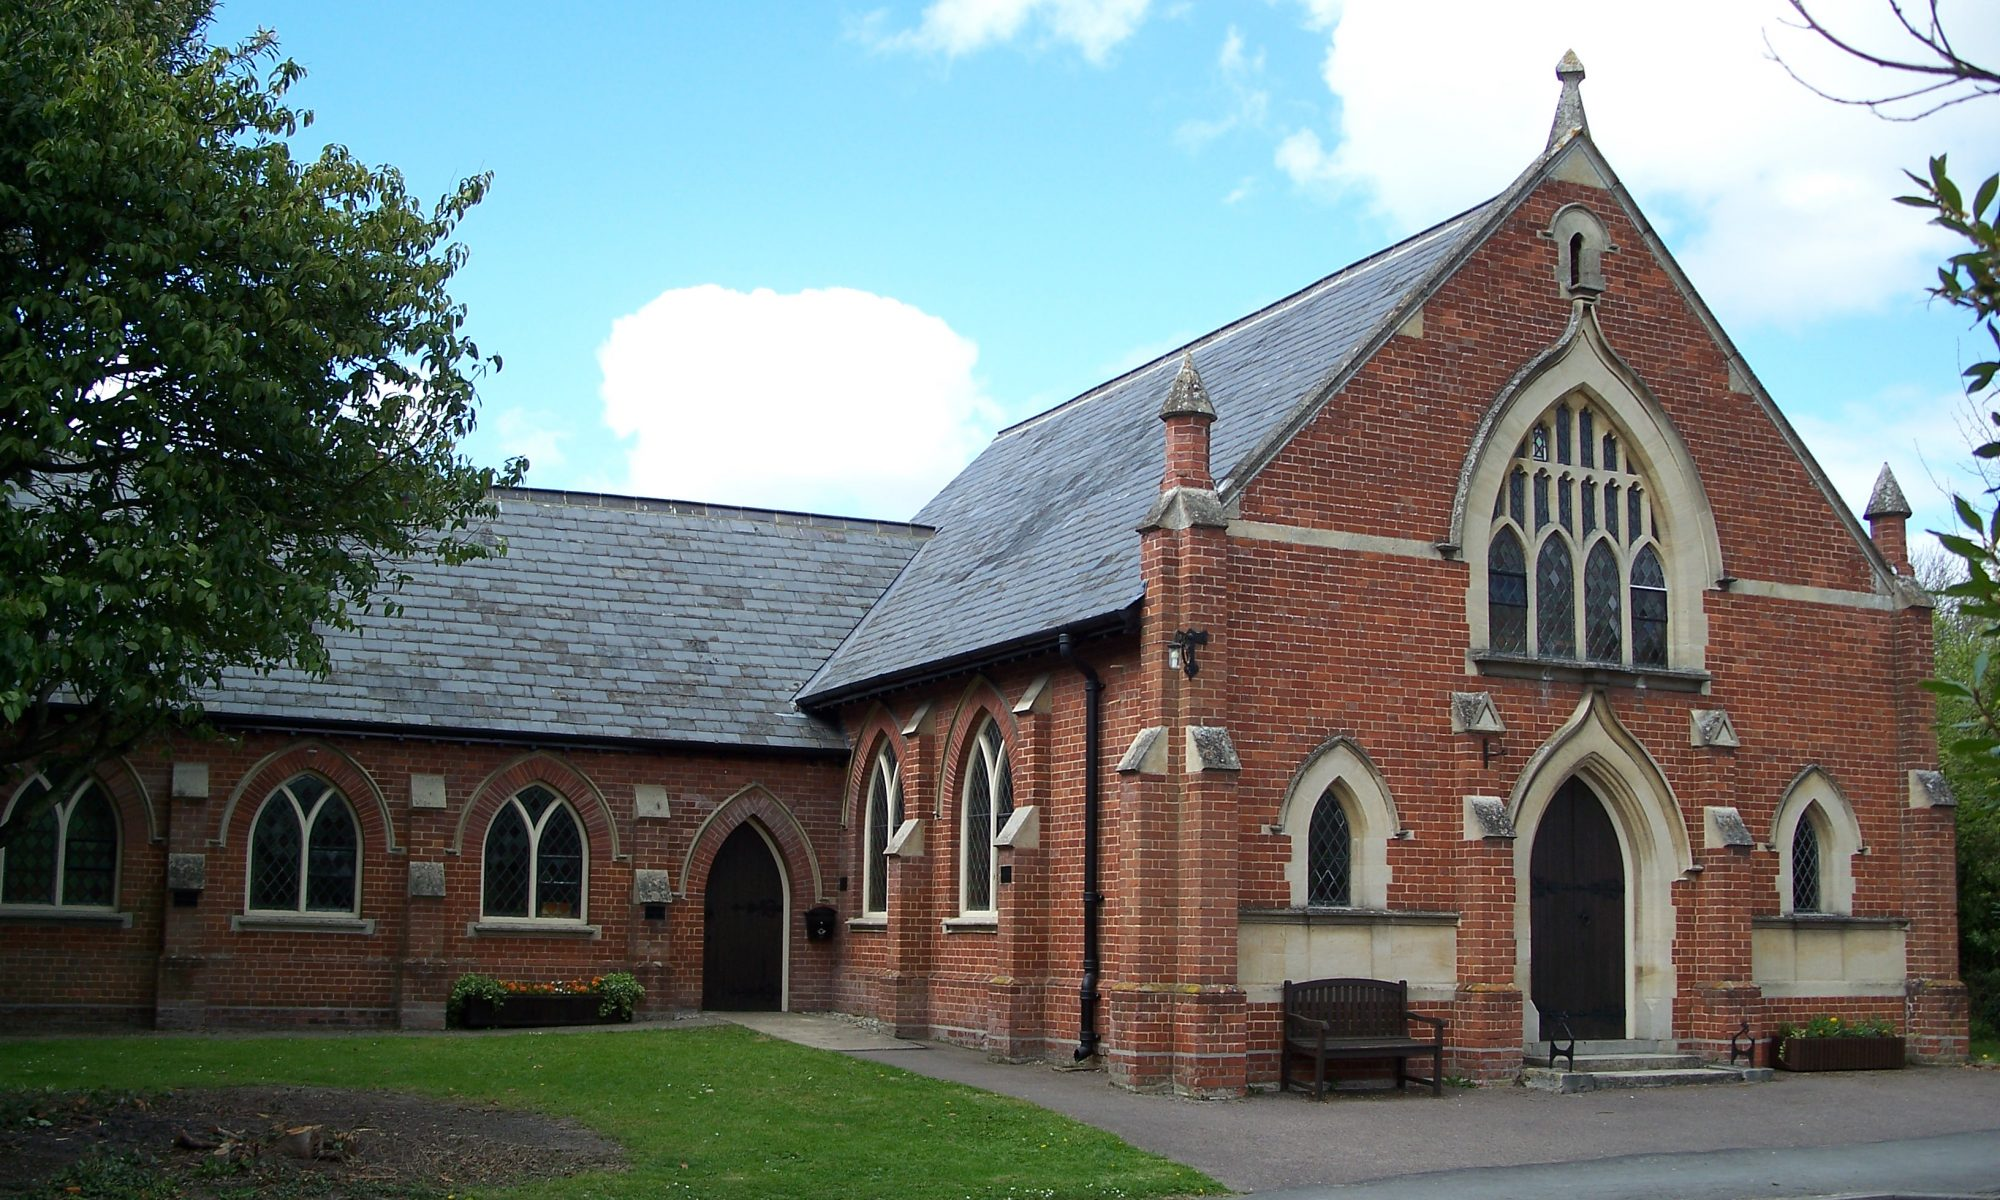 Orwell Methodist Church